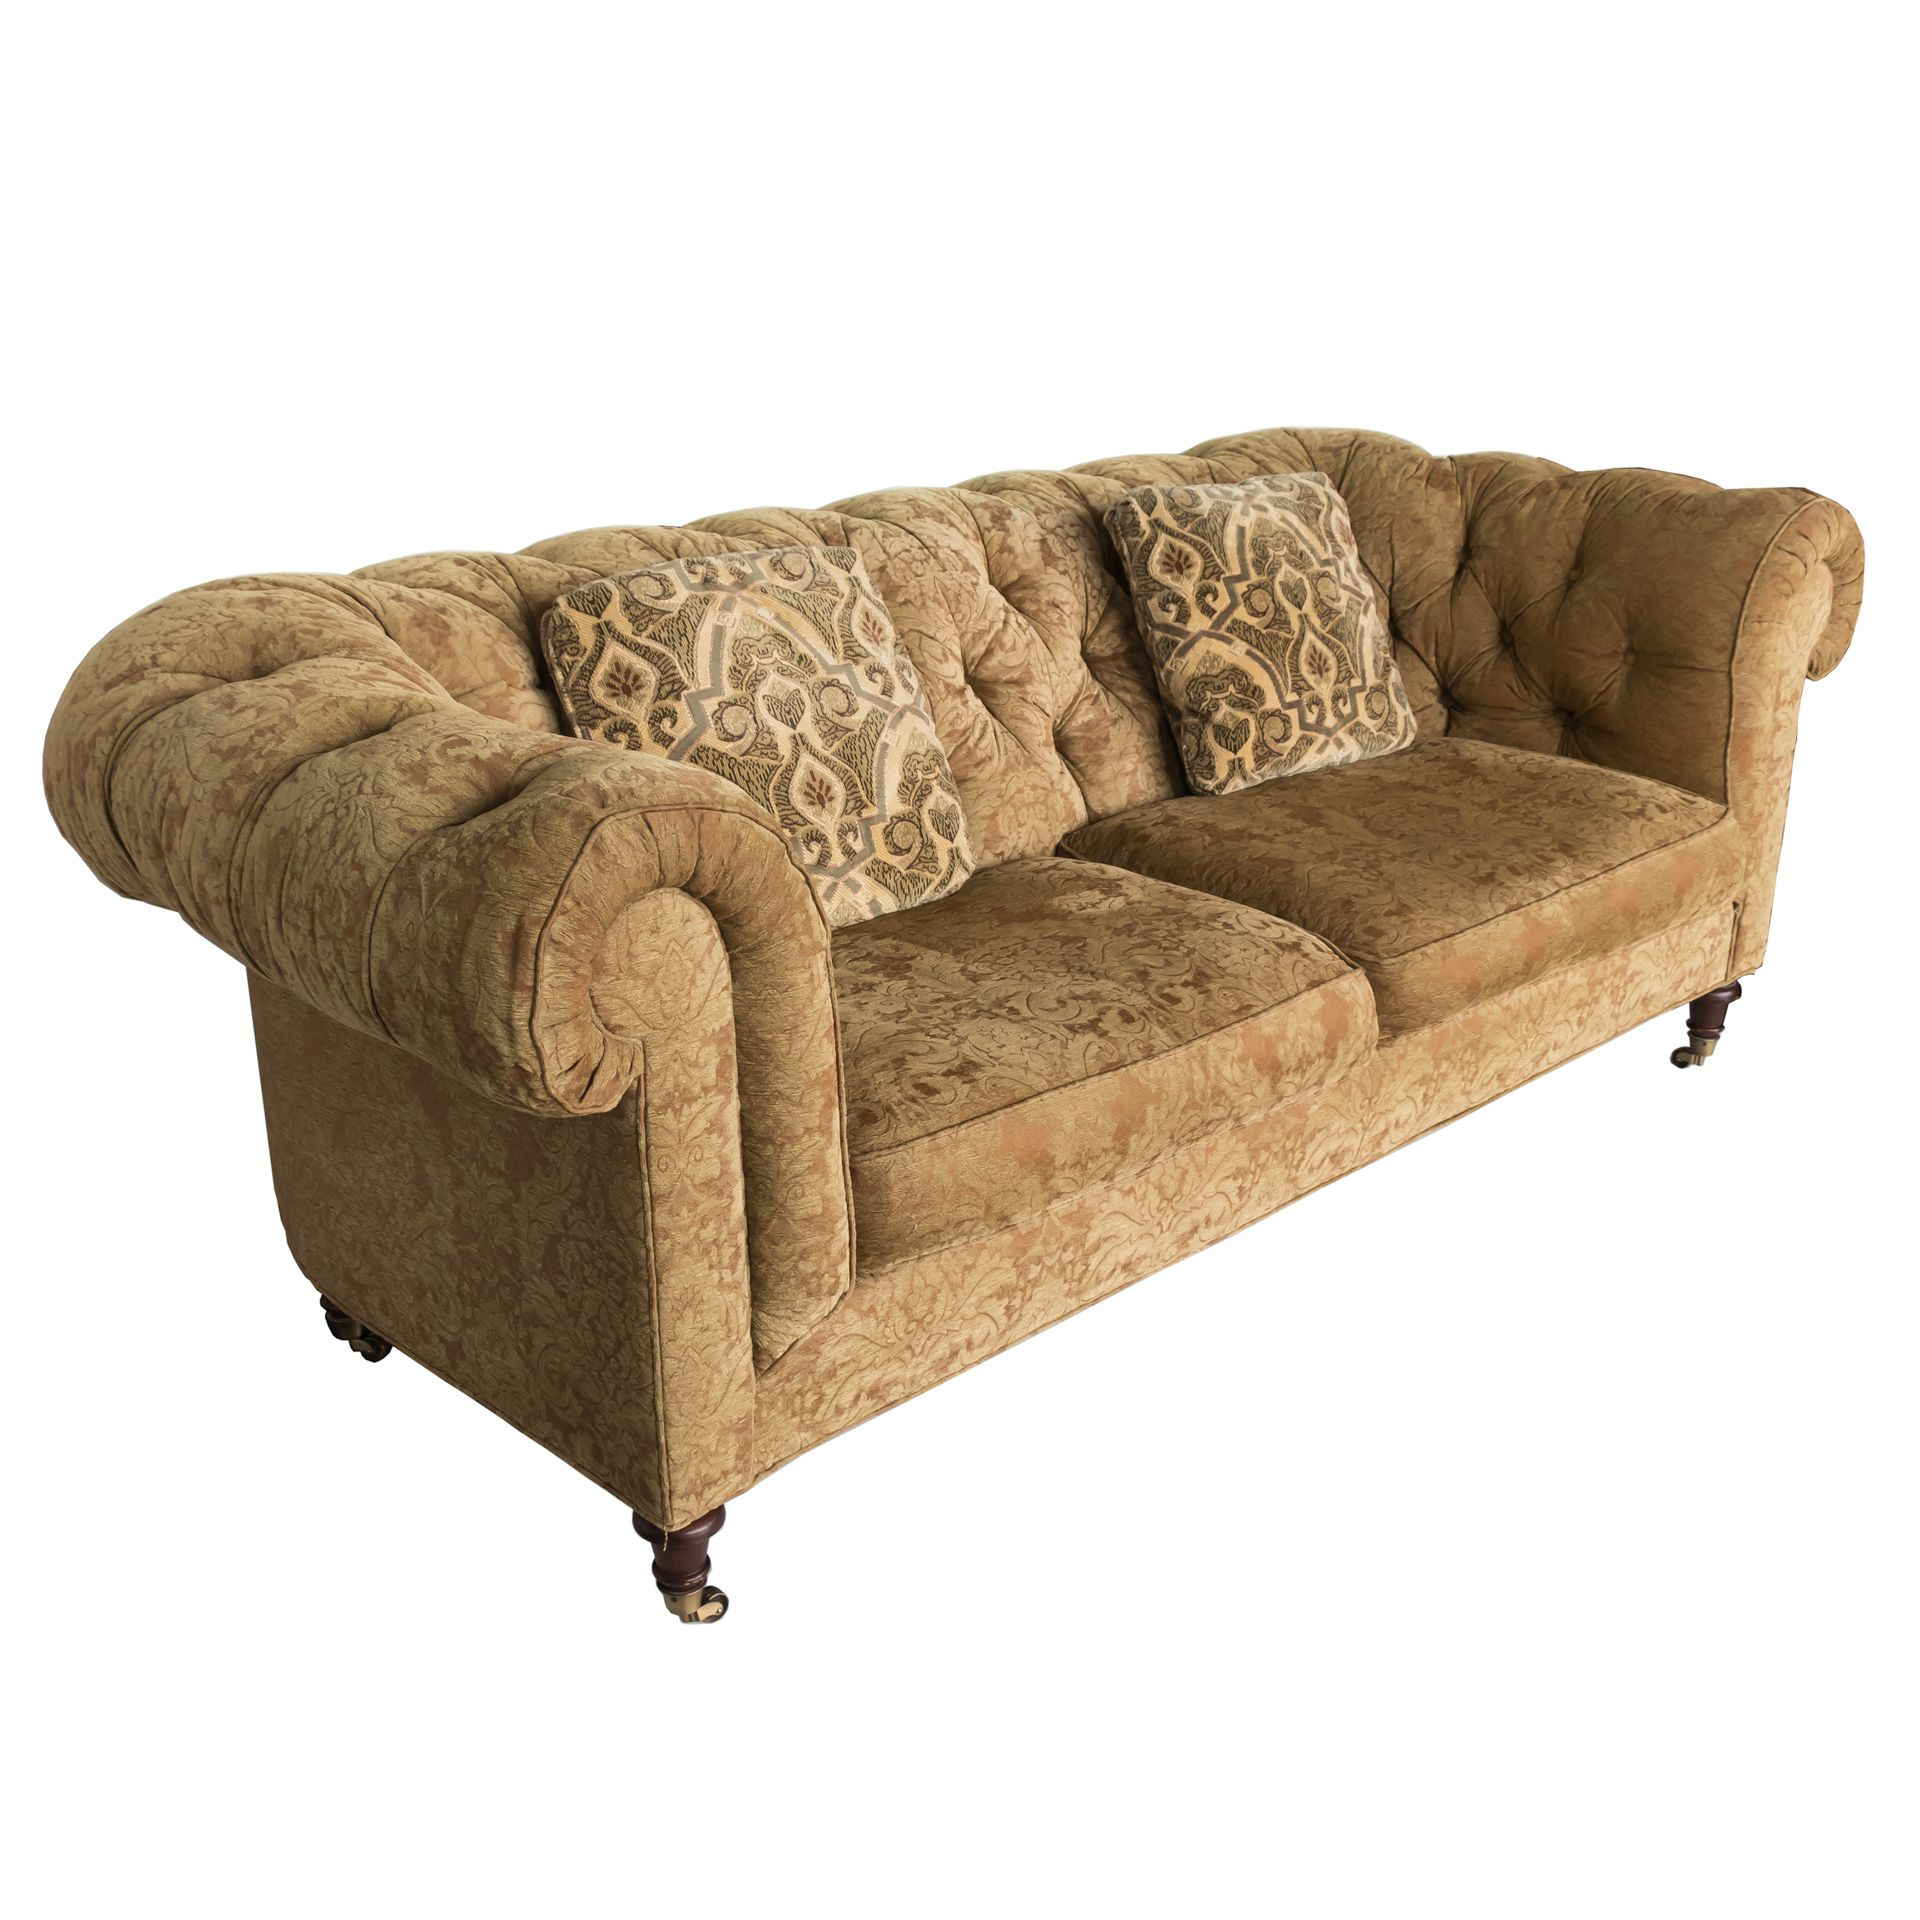 Sofa From Lillian August